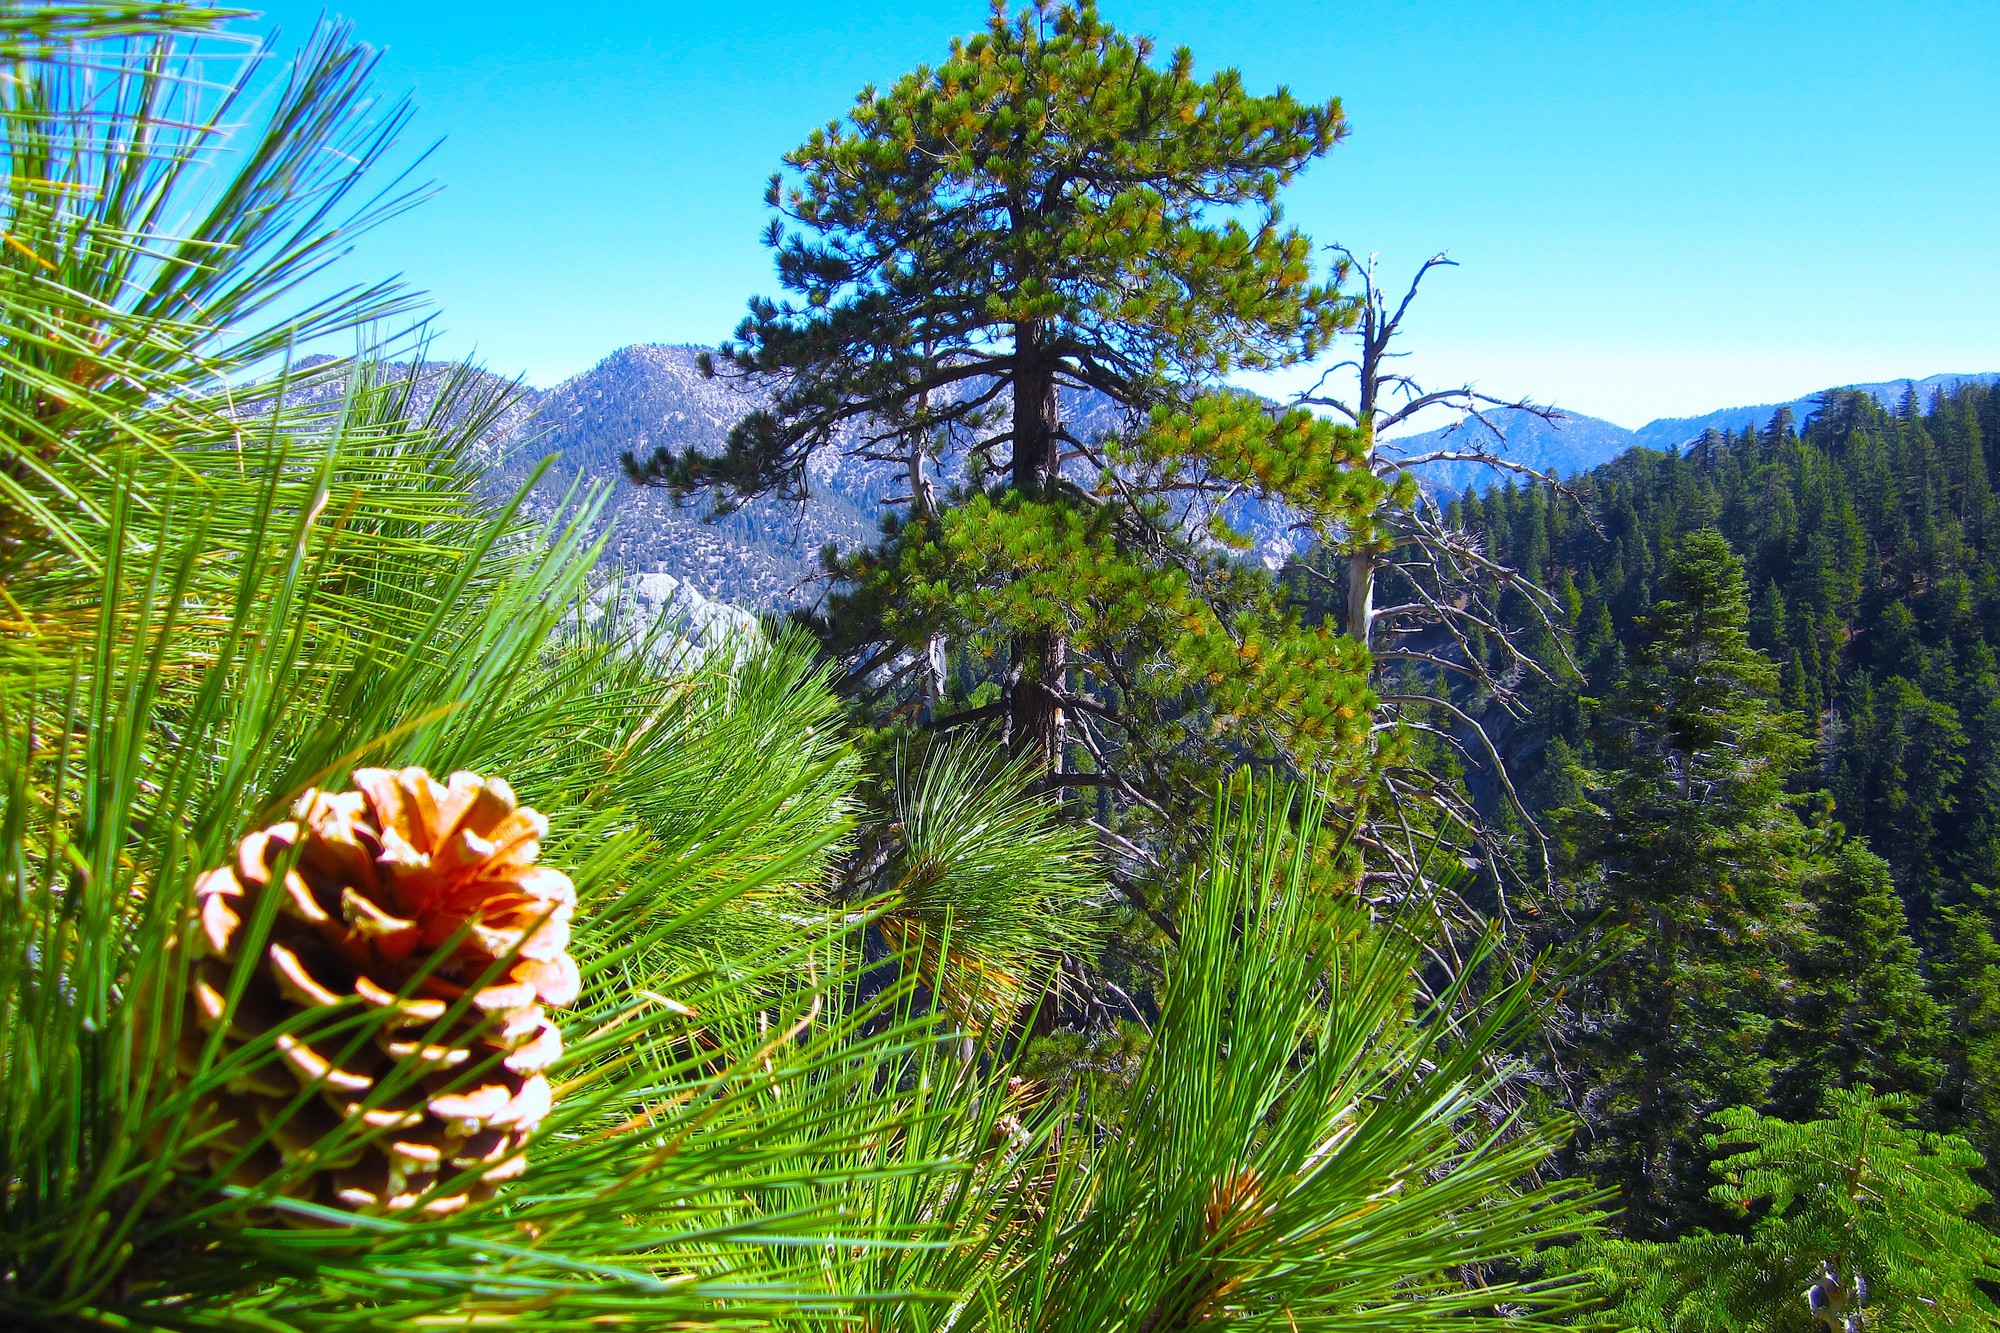 Pine cone and trees on a mountain side wallpaper for Pinecone wallpaper